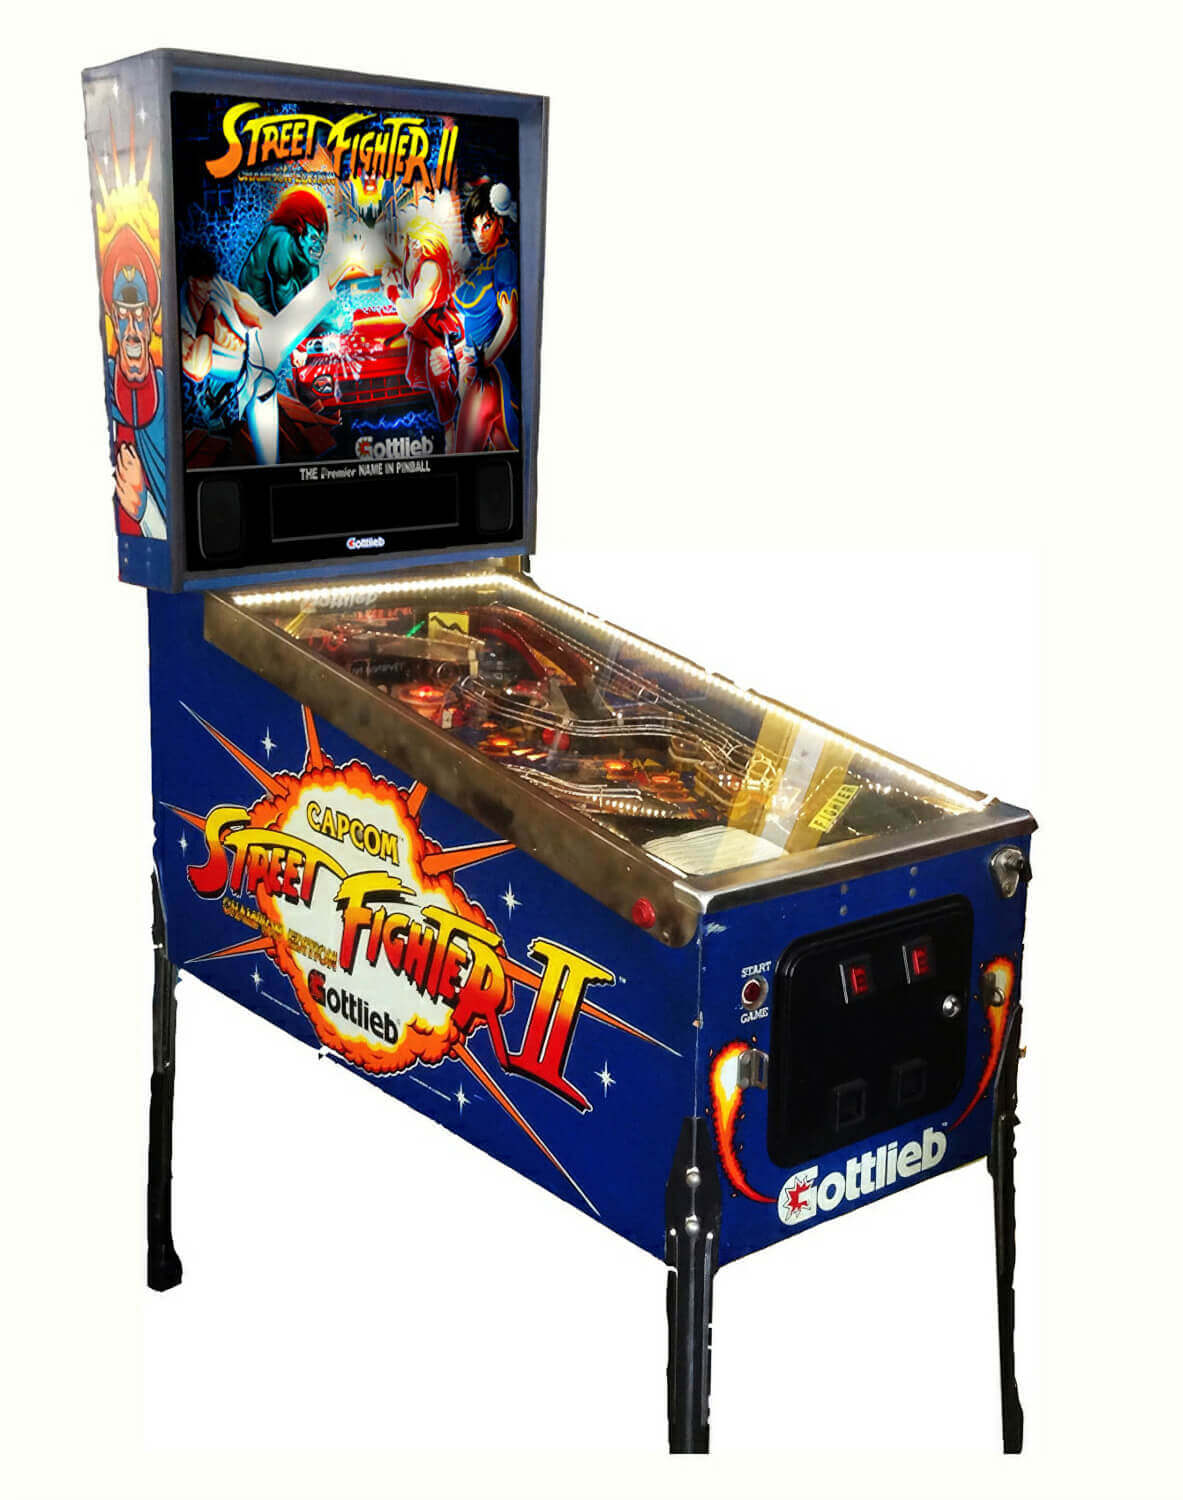 Street Fighter Ii Pinball Machine For Sale Liberty Games